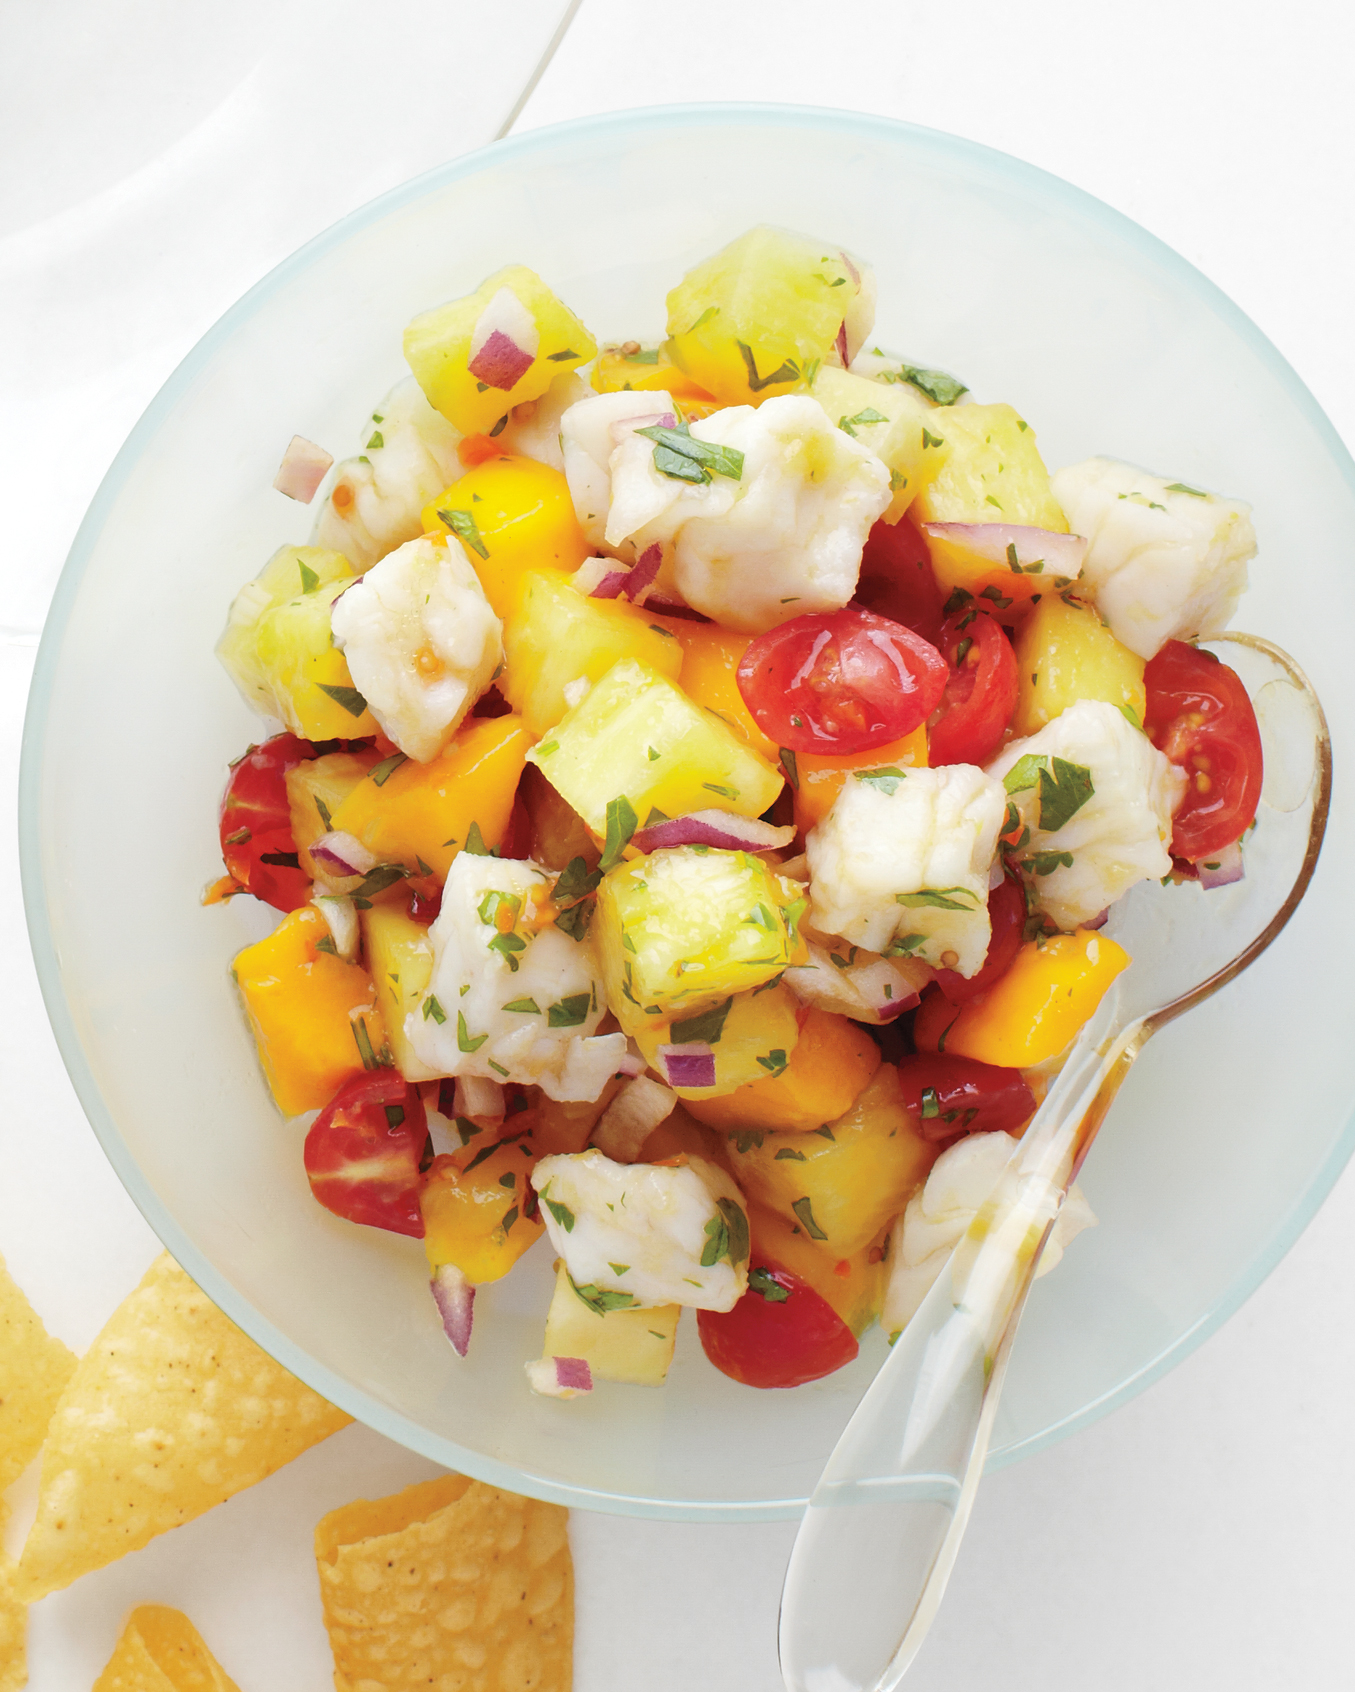 ceviche-with-tropical-fruit-and-habanero-d107412-0615.jpg